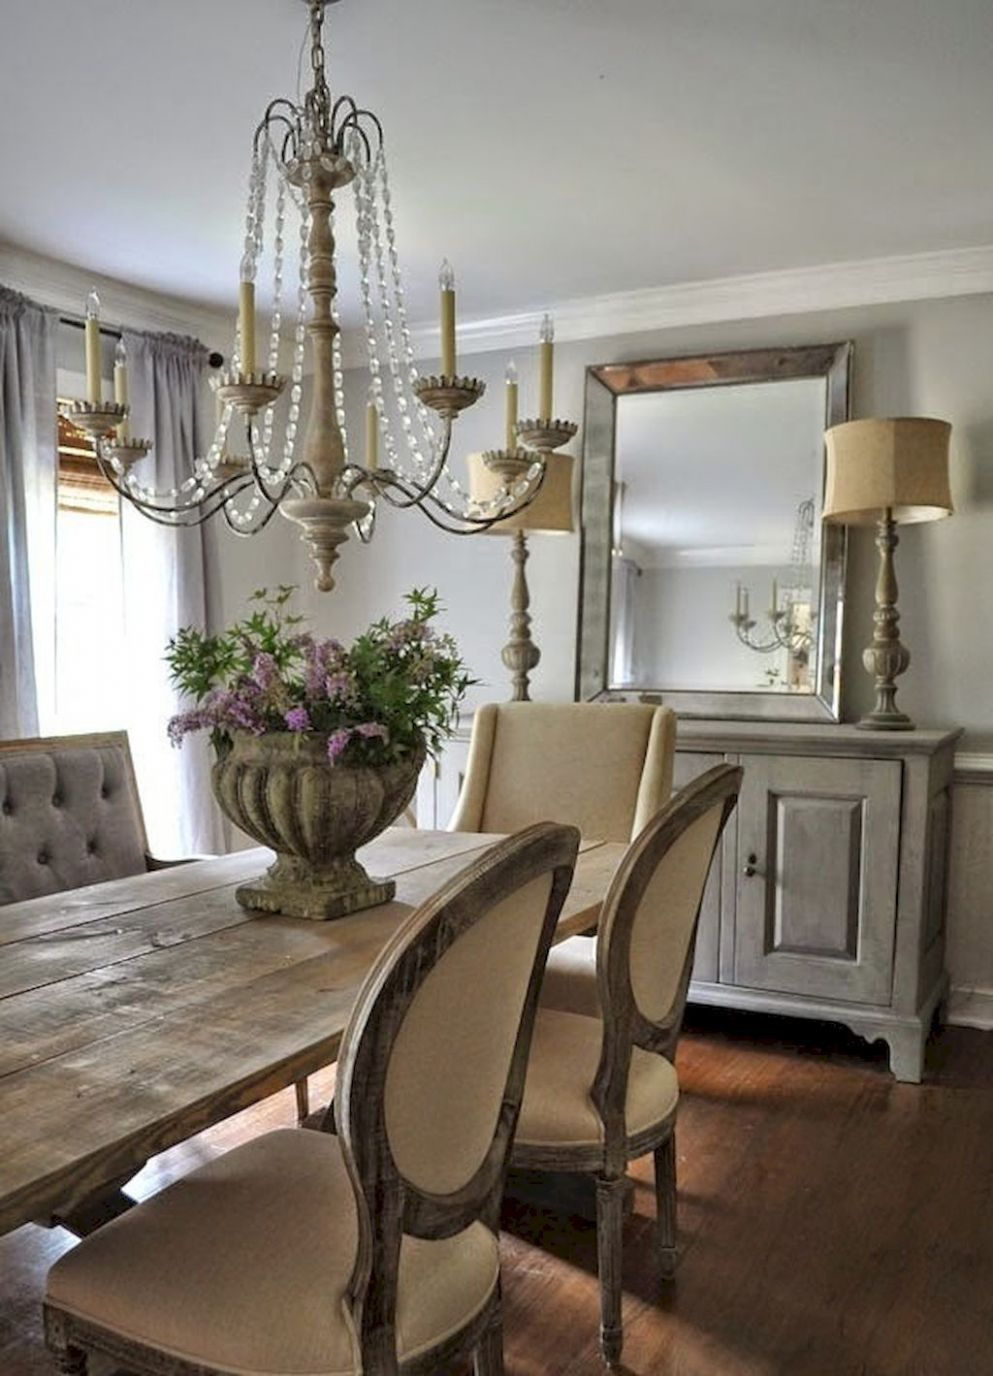 Lasting french country dining room furniture & decor ideas (9 ..